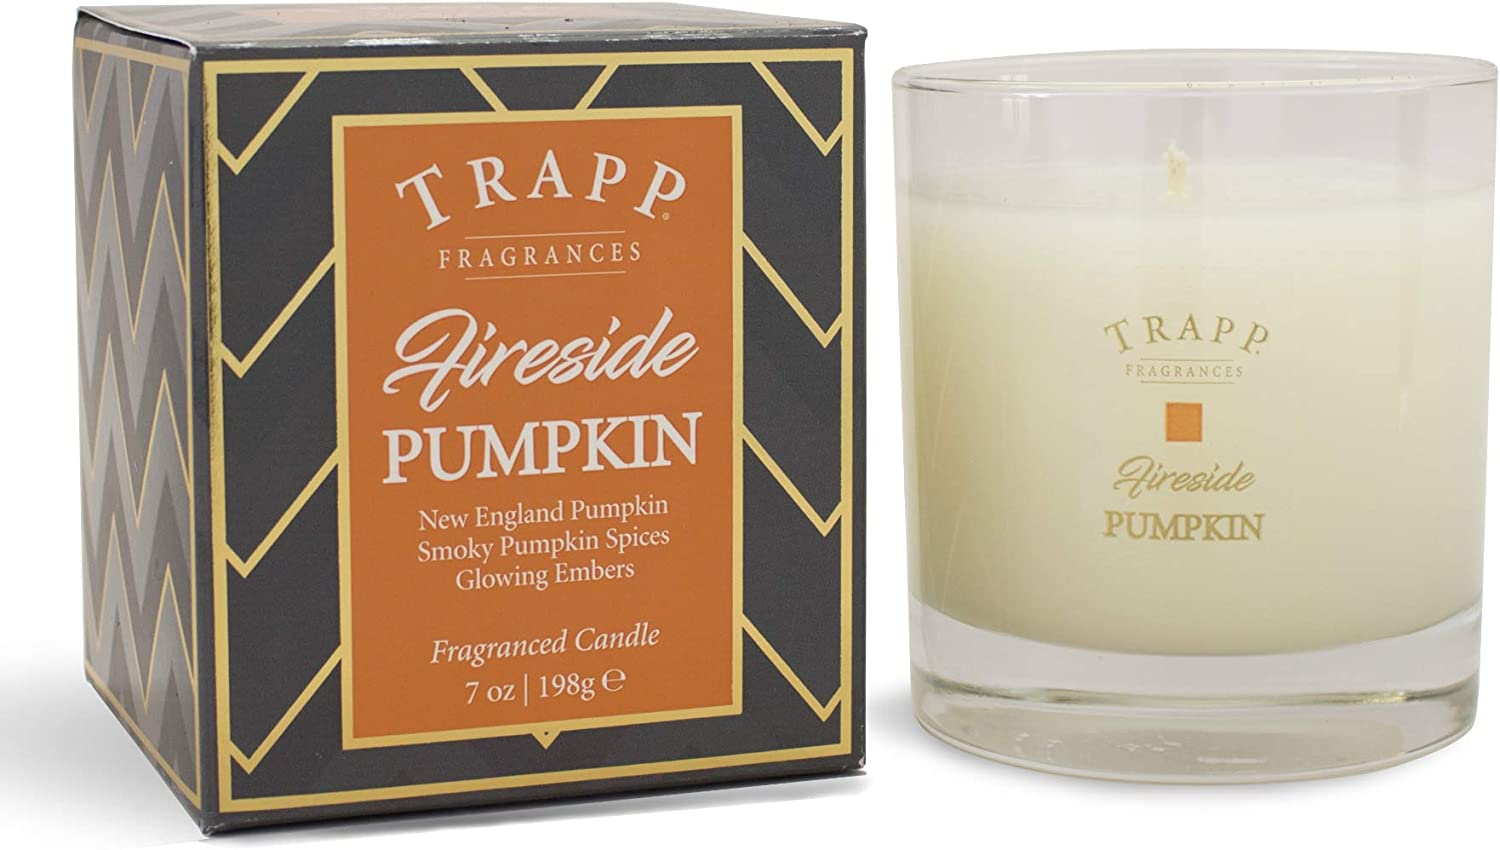 Trapp Seasonal Collection Home Fragrance 7oz Large Poured Scented Candle - Fireside Pumpkin